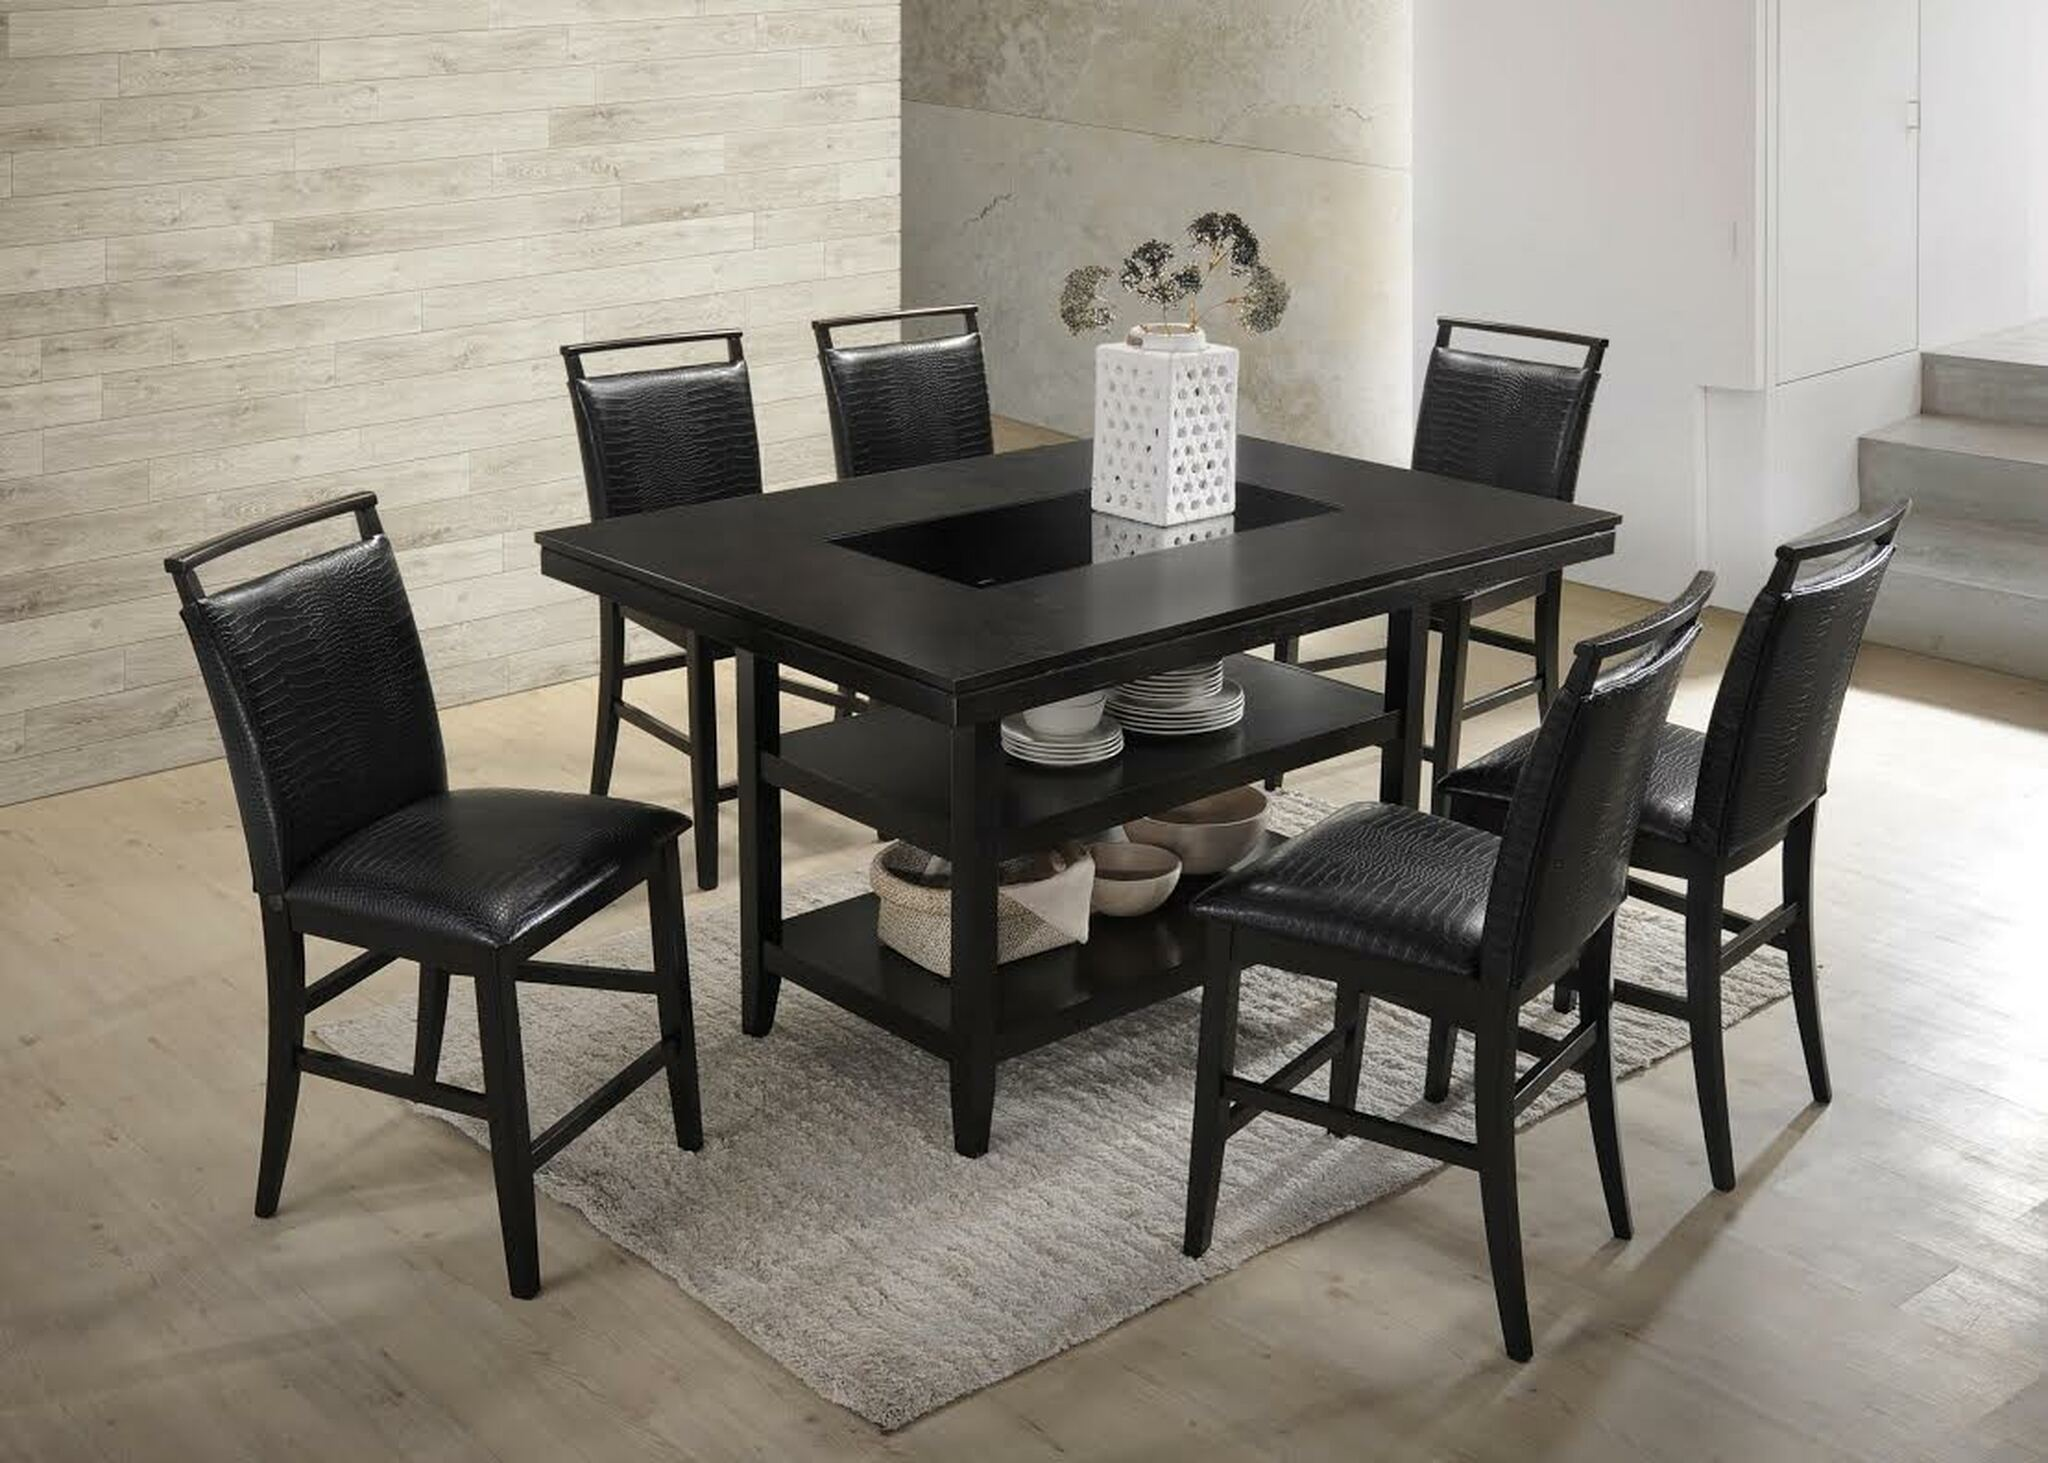 7pcs Black Counter Height Dining Table Set Black Crocodile Upholstery Kassa Mall Home Furniture